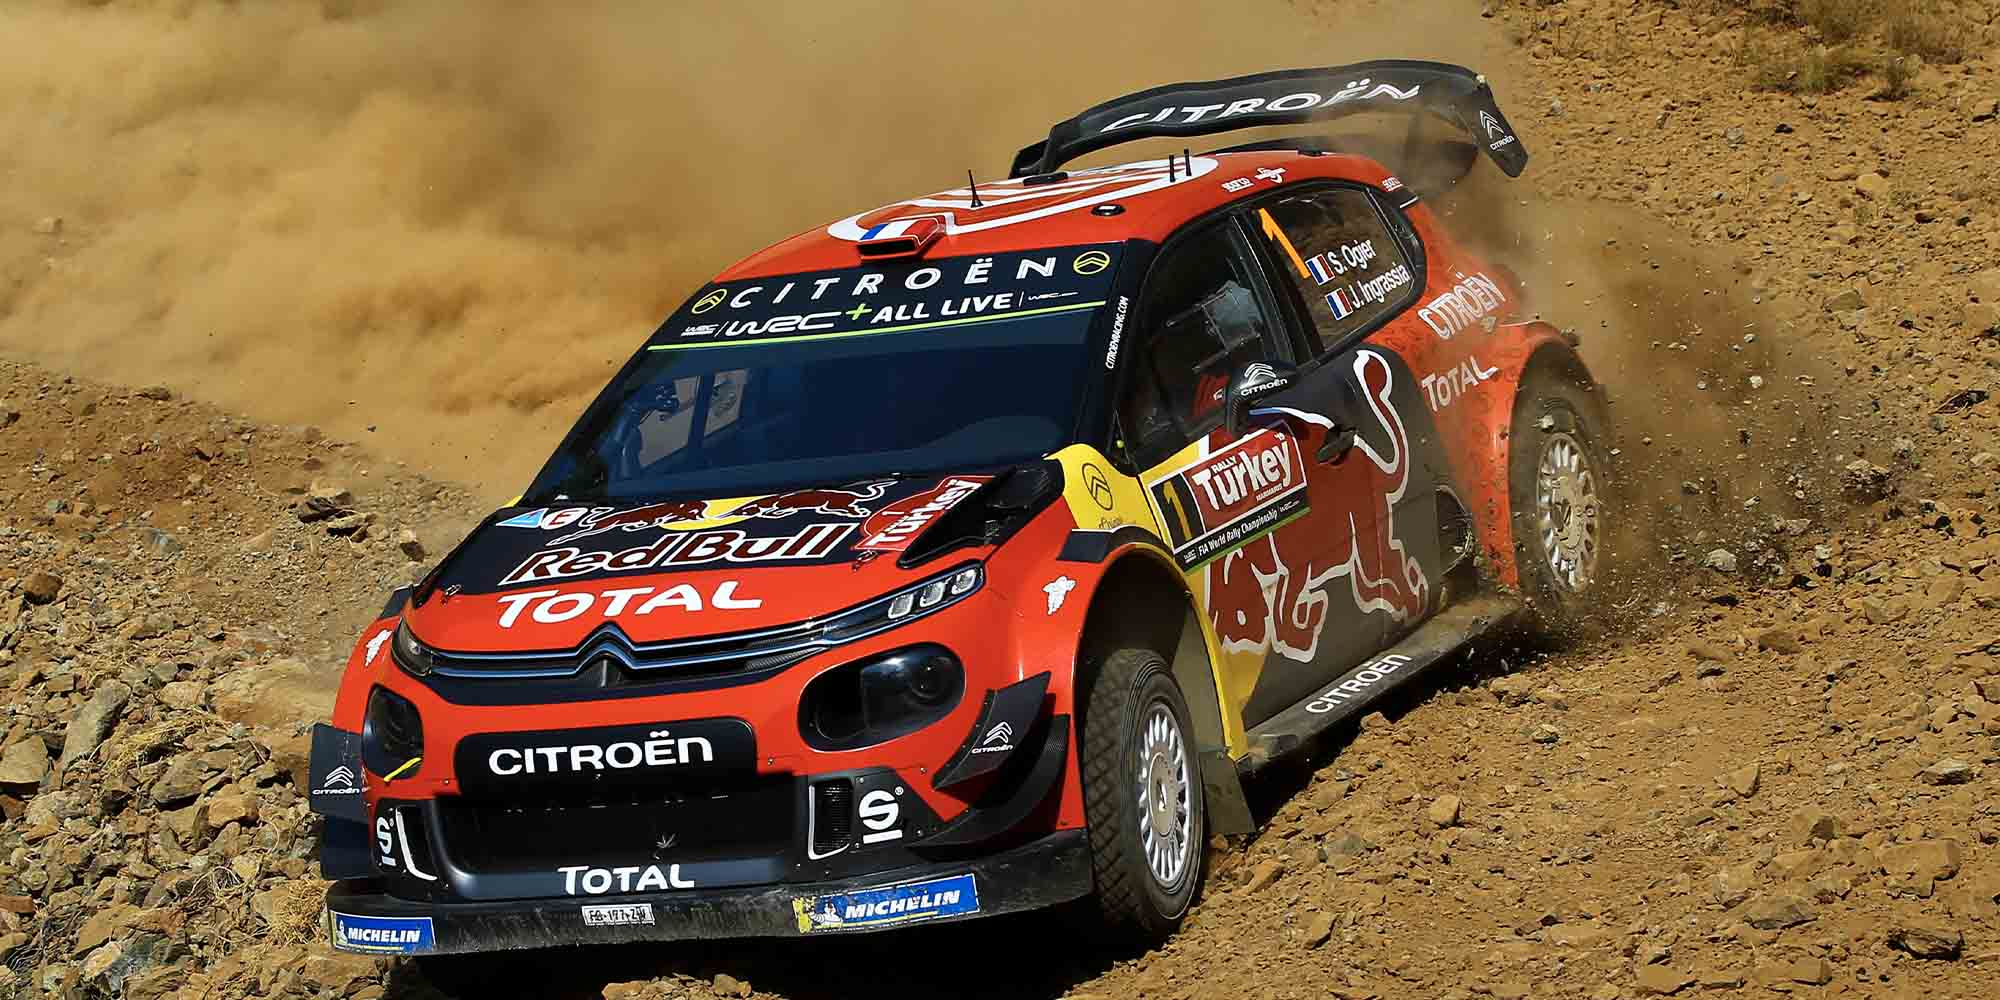 Citroën withdraws from WRC after Ogier departure